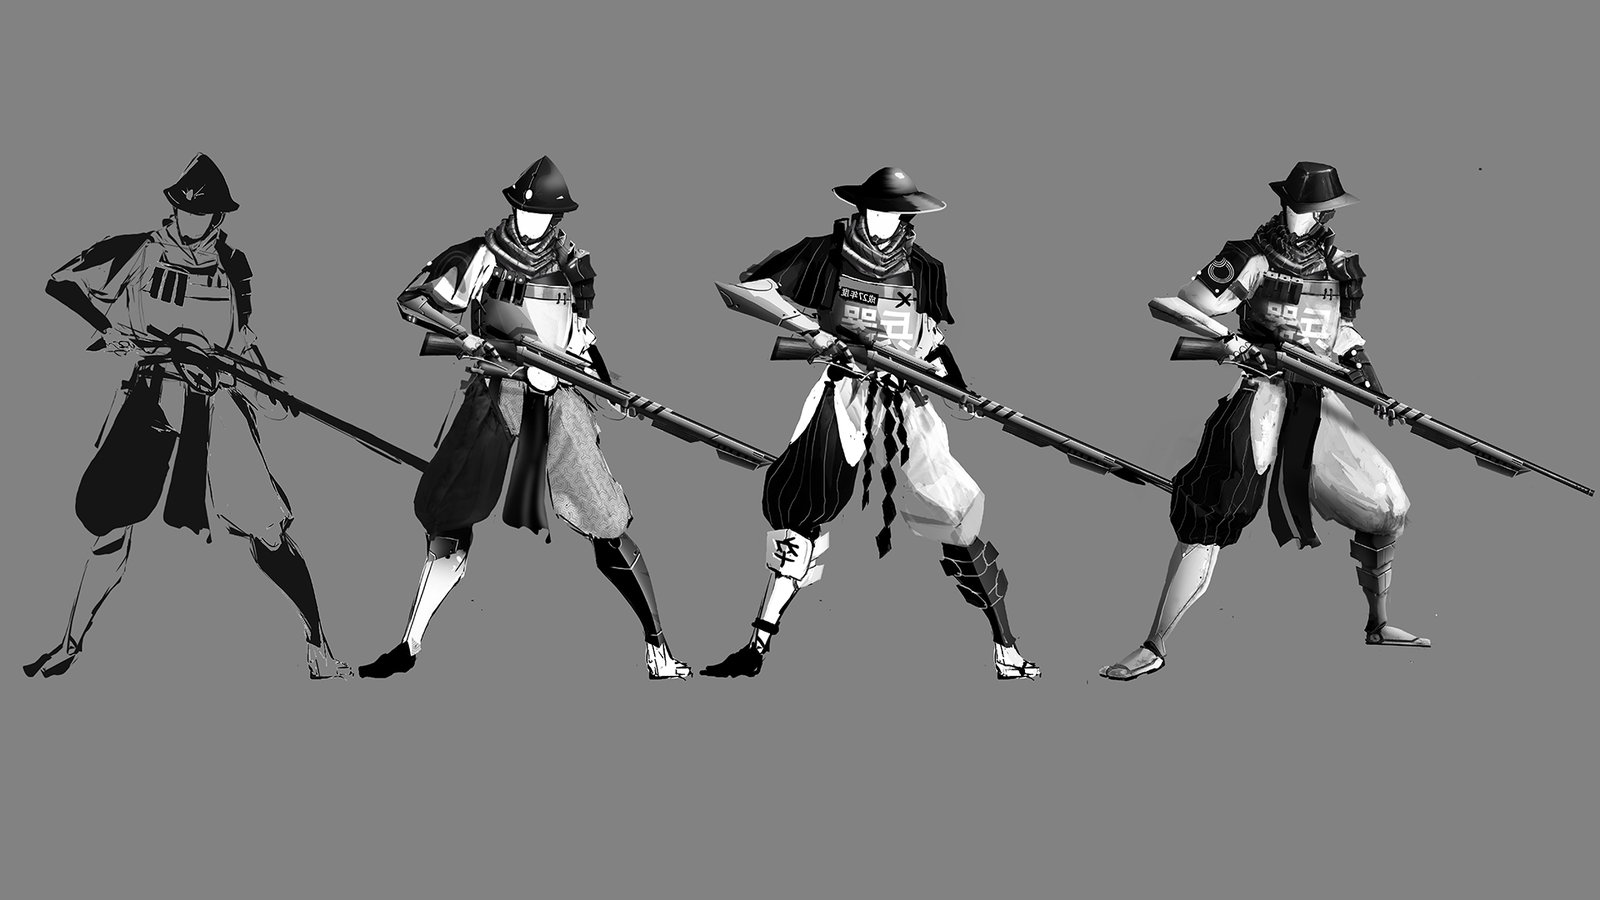 Foot Soldier exploration with final design